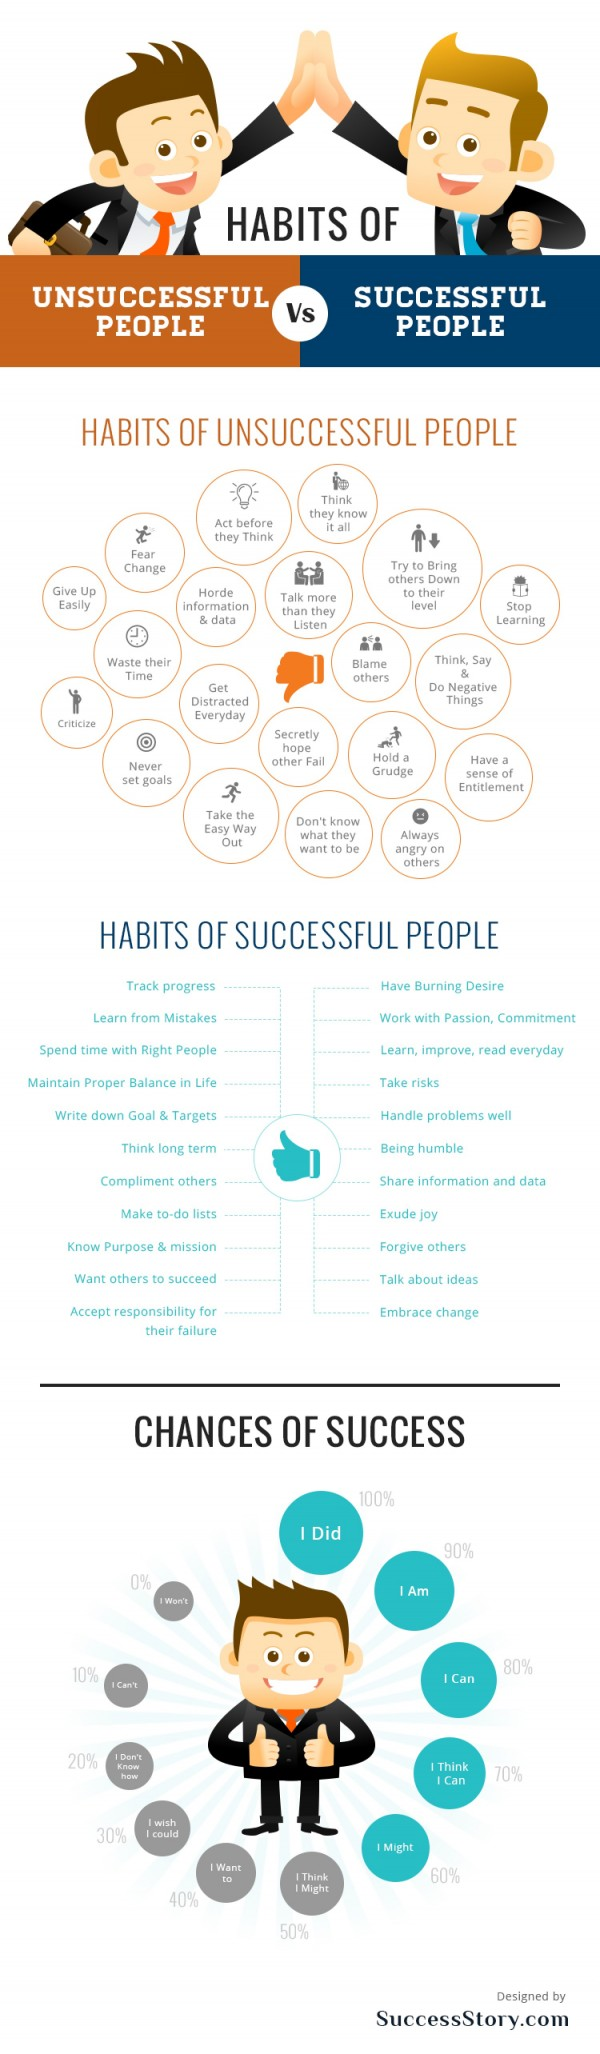 HabitsofUnsuccessfulPeopleVsSuccessfulPeople